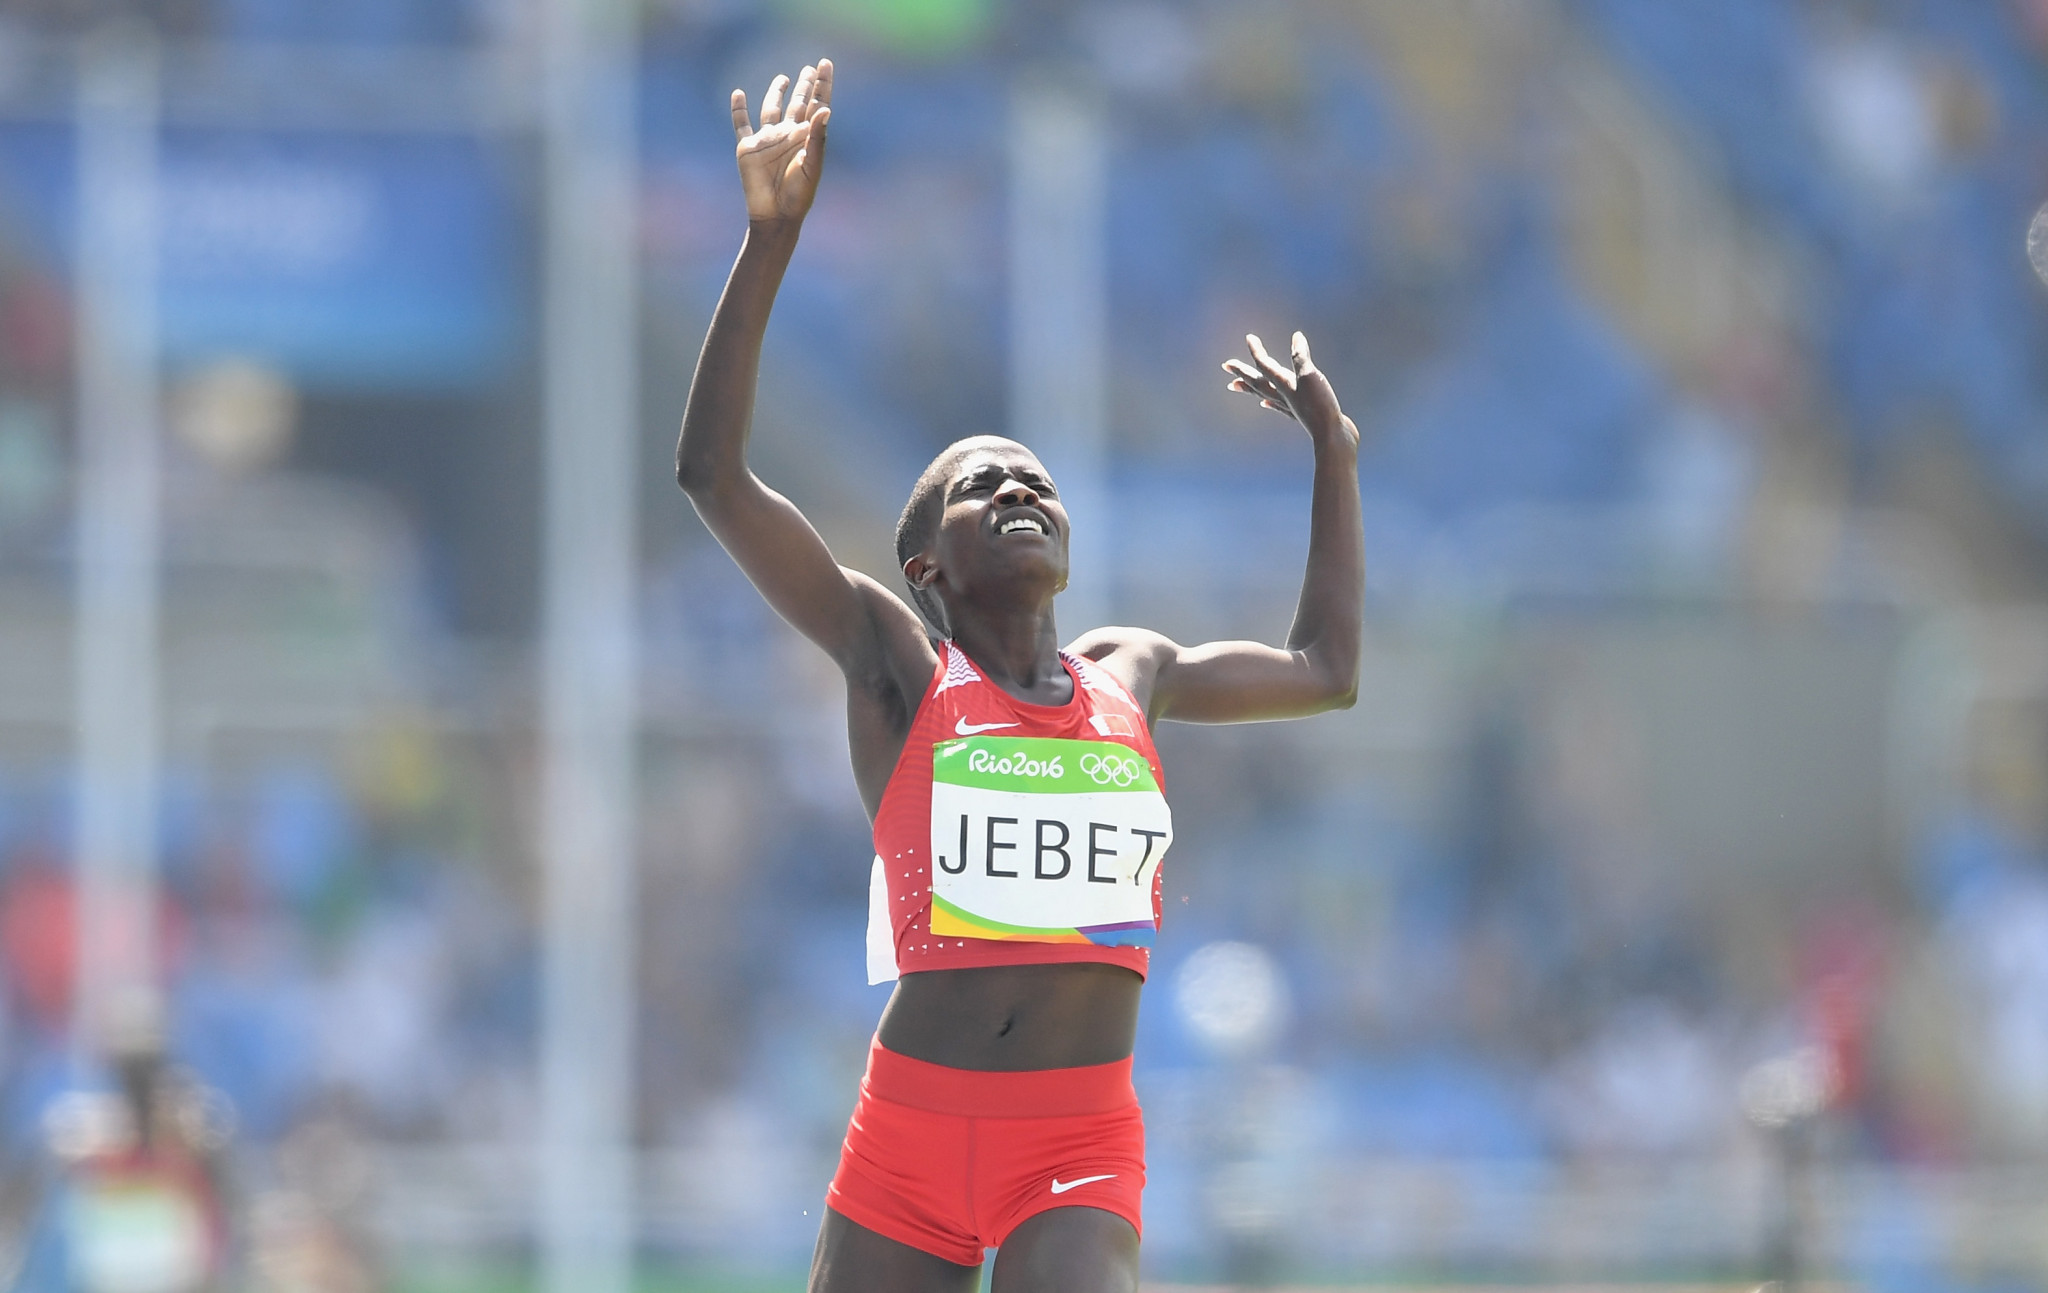 Ruth Jebet is the reigning Olympic steeplechase champion ©Getty Images